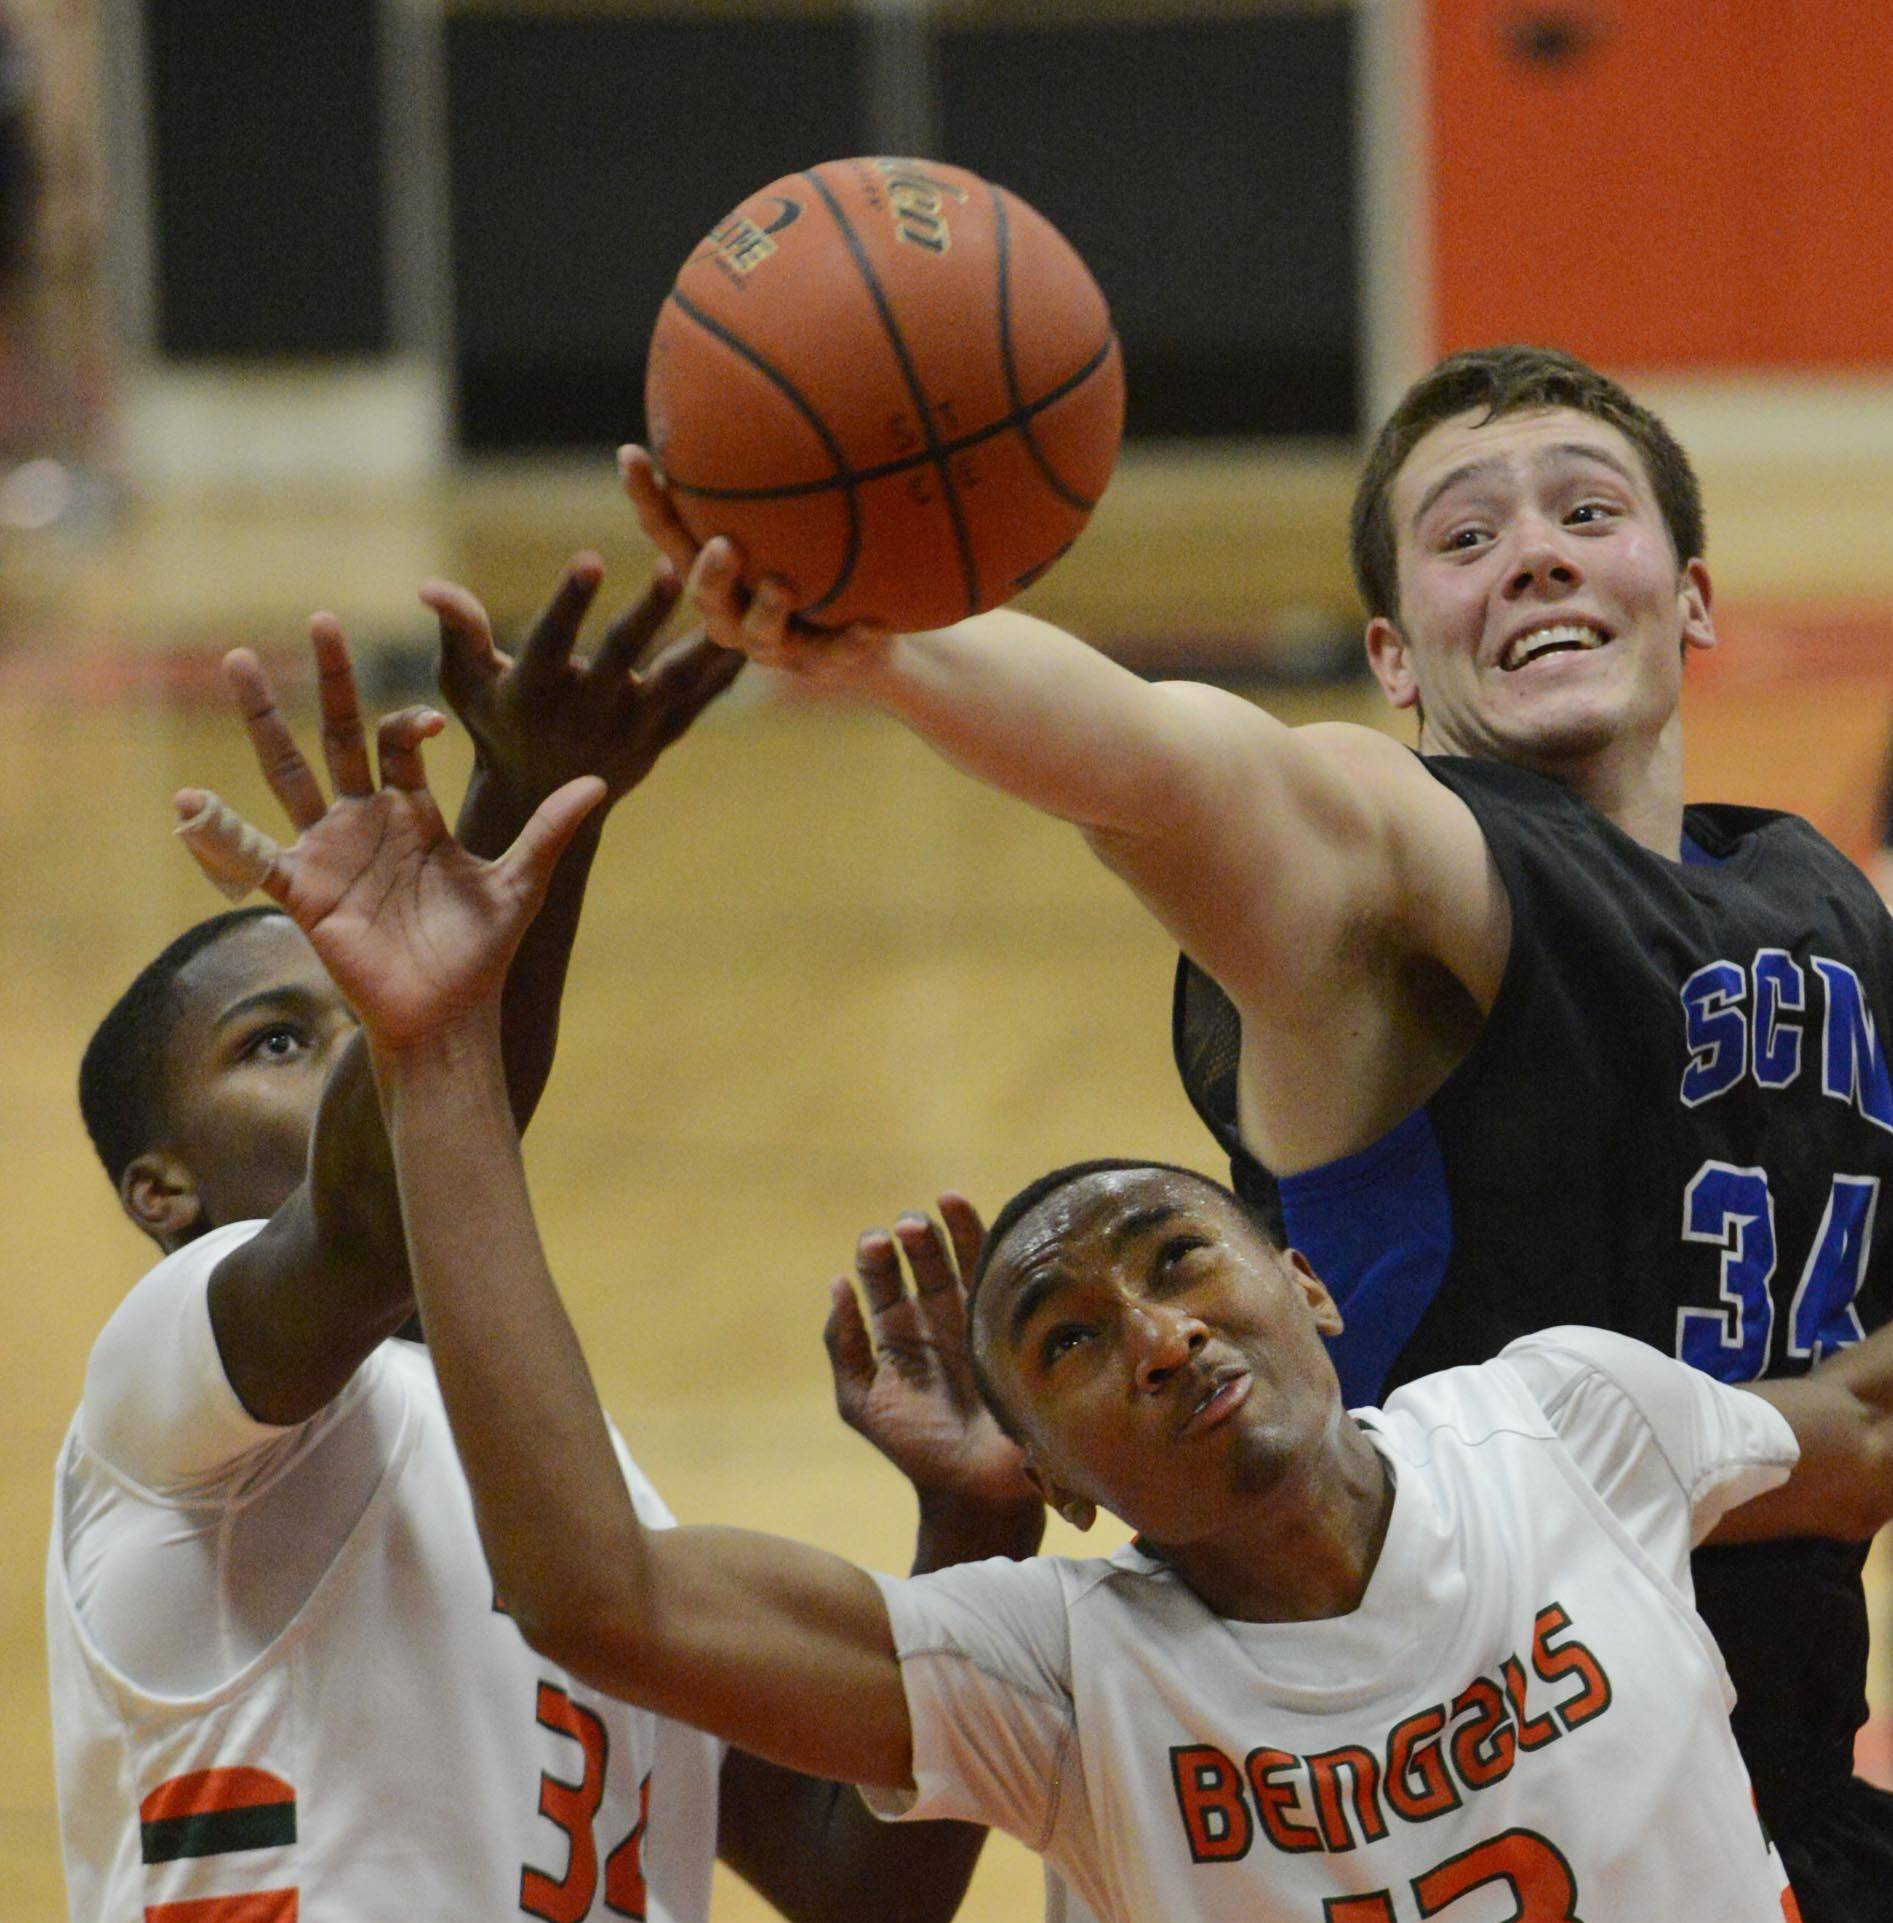 St. Charles North's Garrett Johnson grabs a rebound over Plainfield East's Myles Ward and Malik Binns Tuesday in St. Charles.